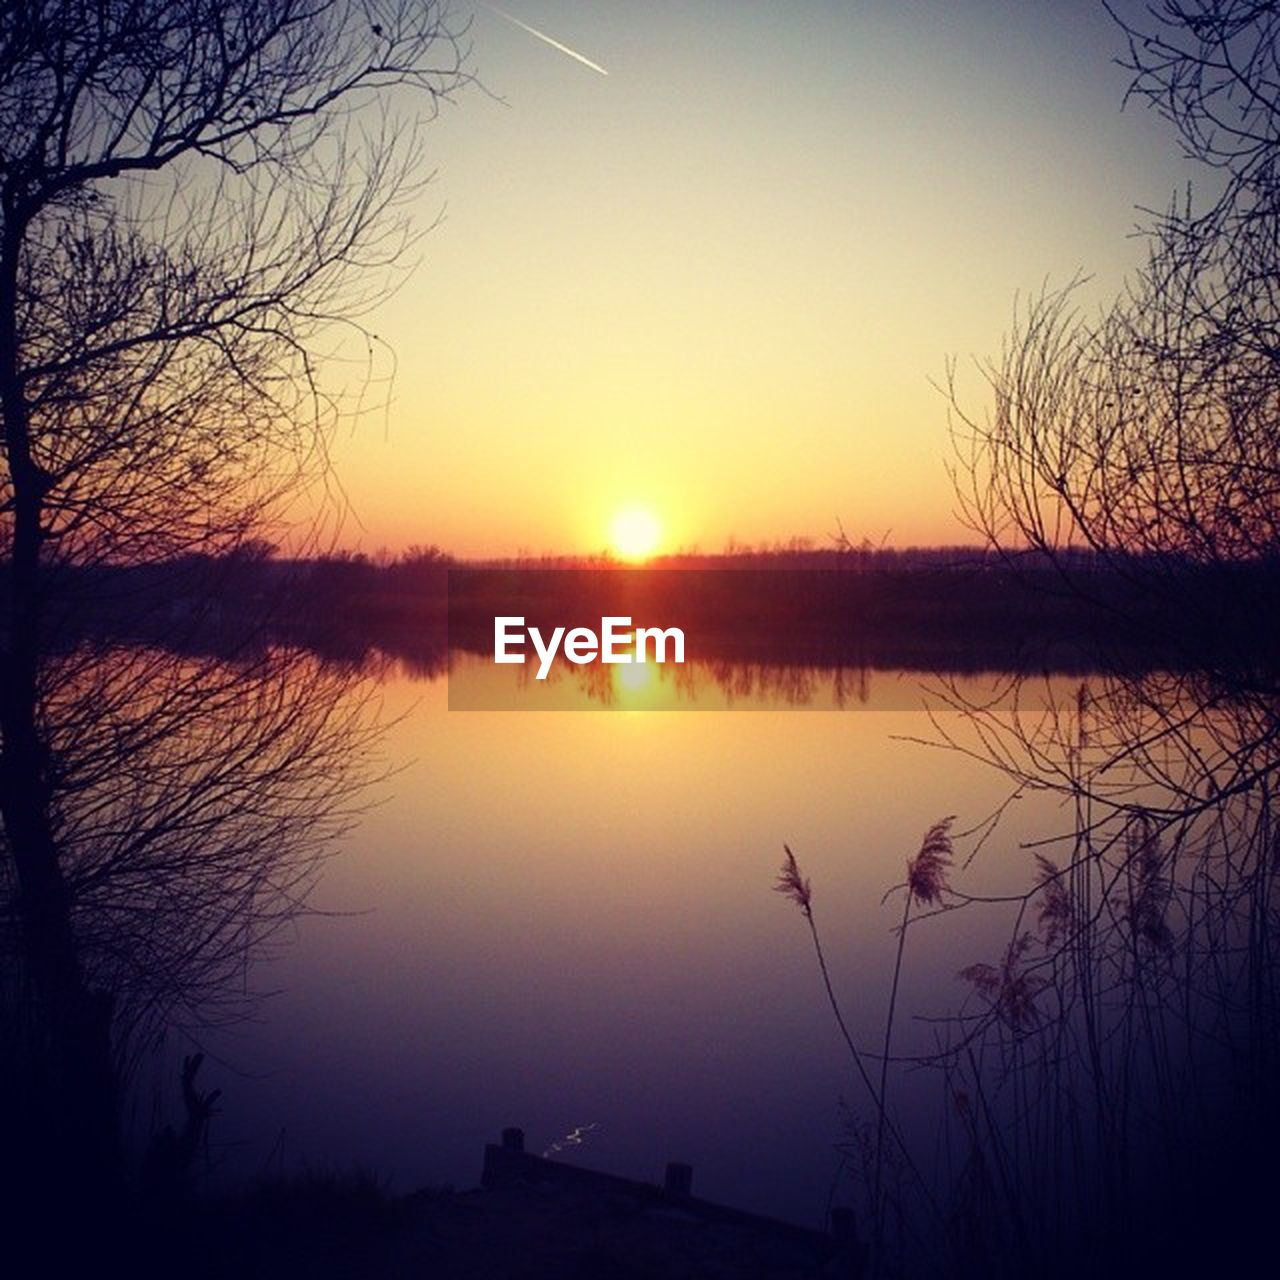 sunset, beauty in nature, reflection, water, nature, tranquil scene, scenics, tranquility, silhouette, sun, sky, lake, idyllic, no people, outdoors, tree, travel destinations, sunlight, bare tree, clear sky, day